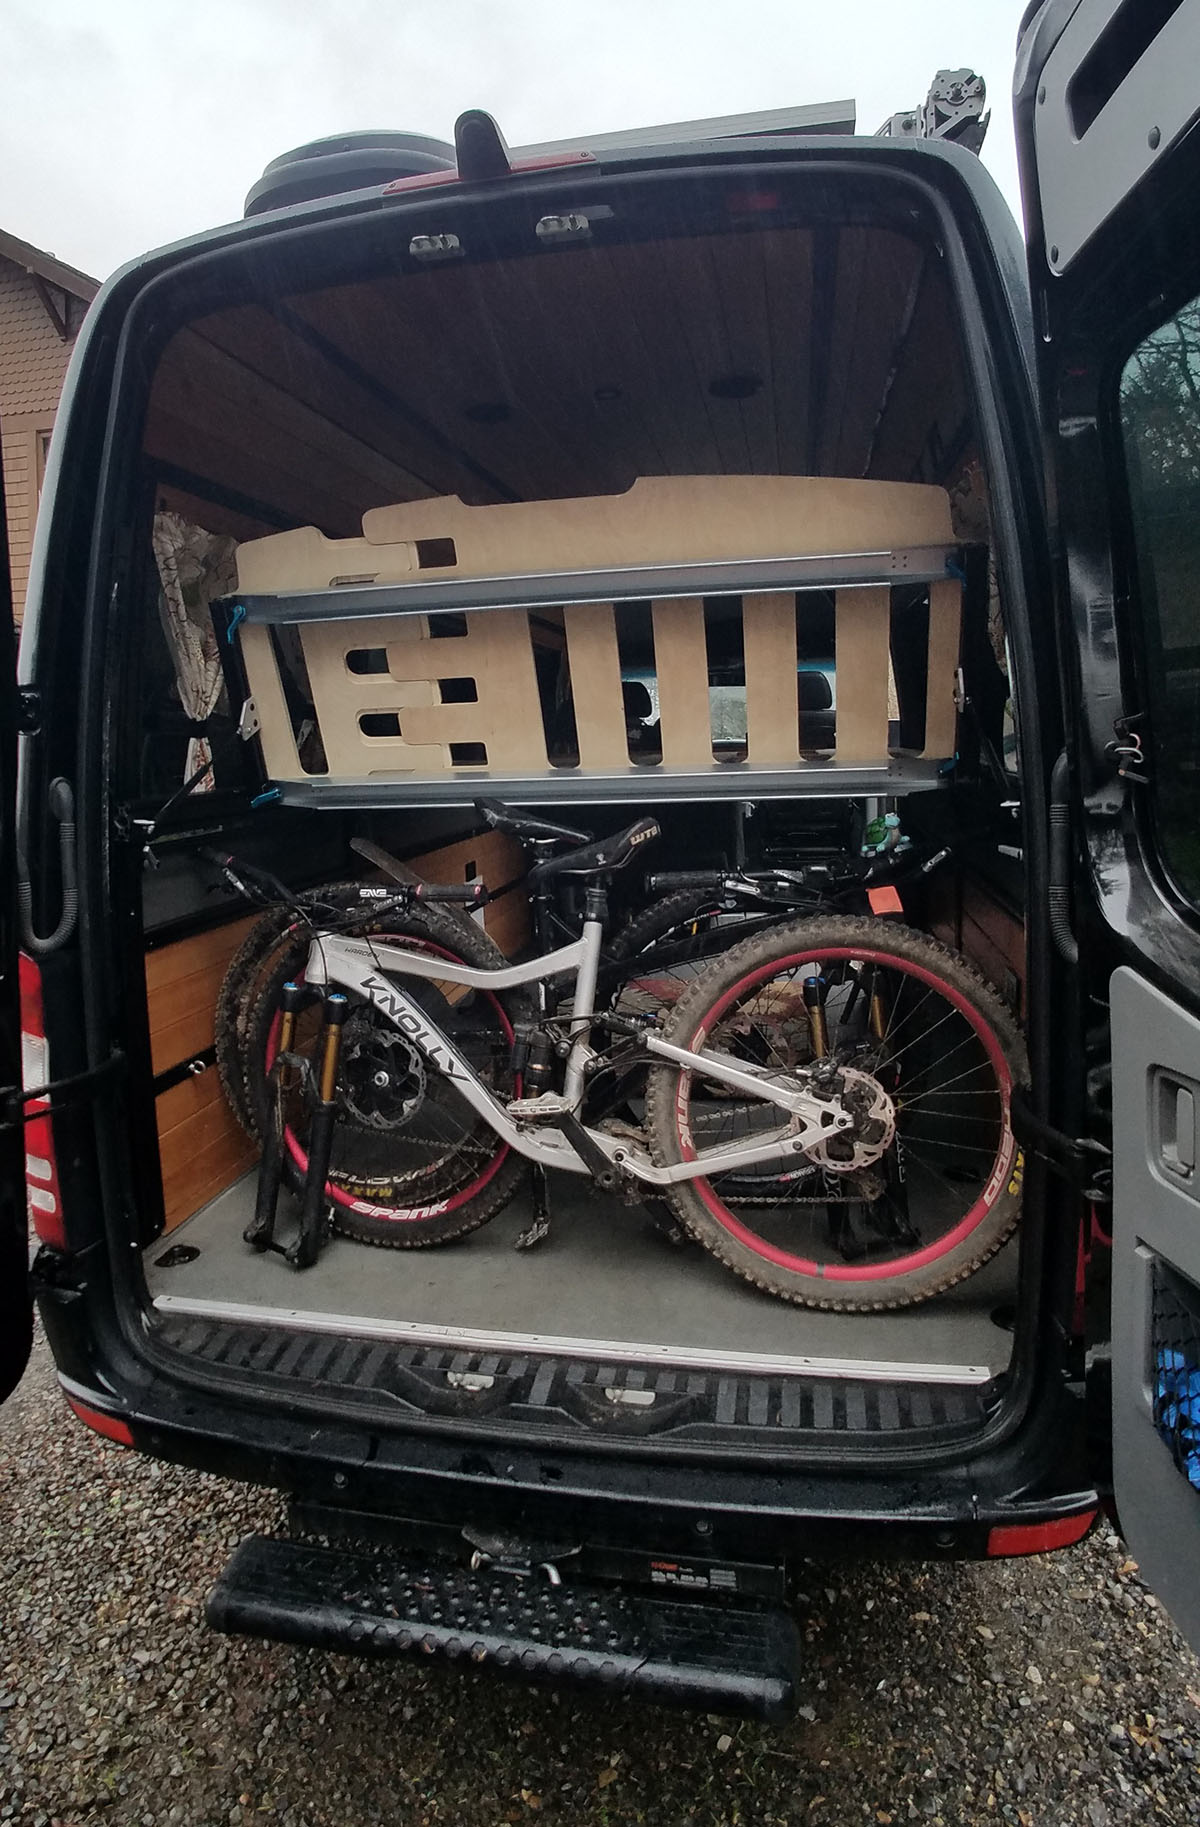 Sprinter van, with bikes; shown with adjustable bed tilted up for access